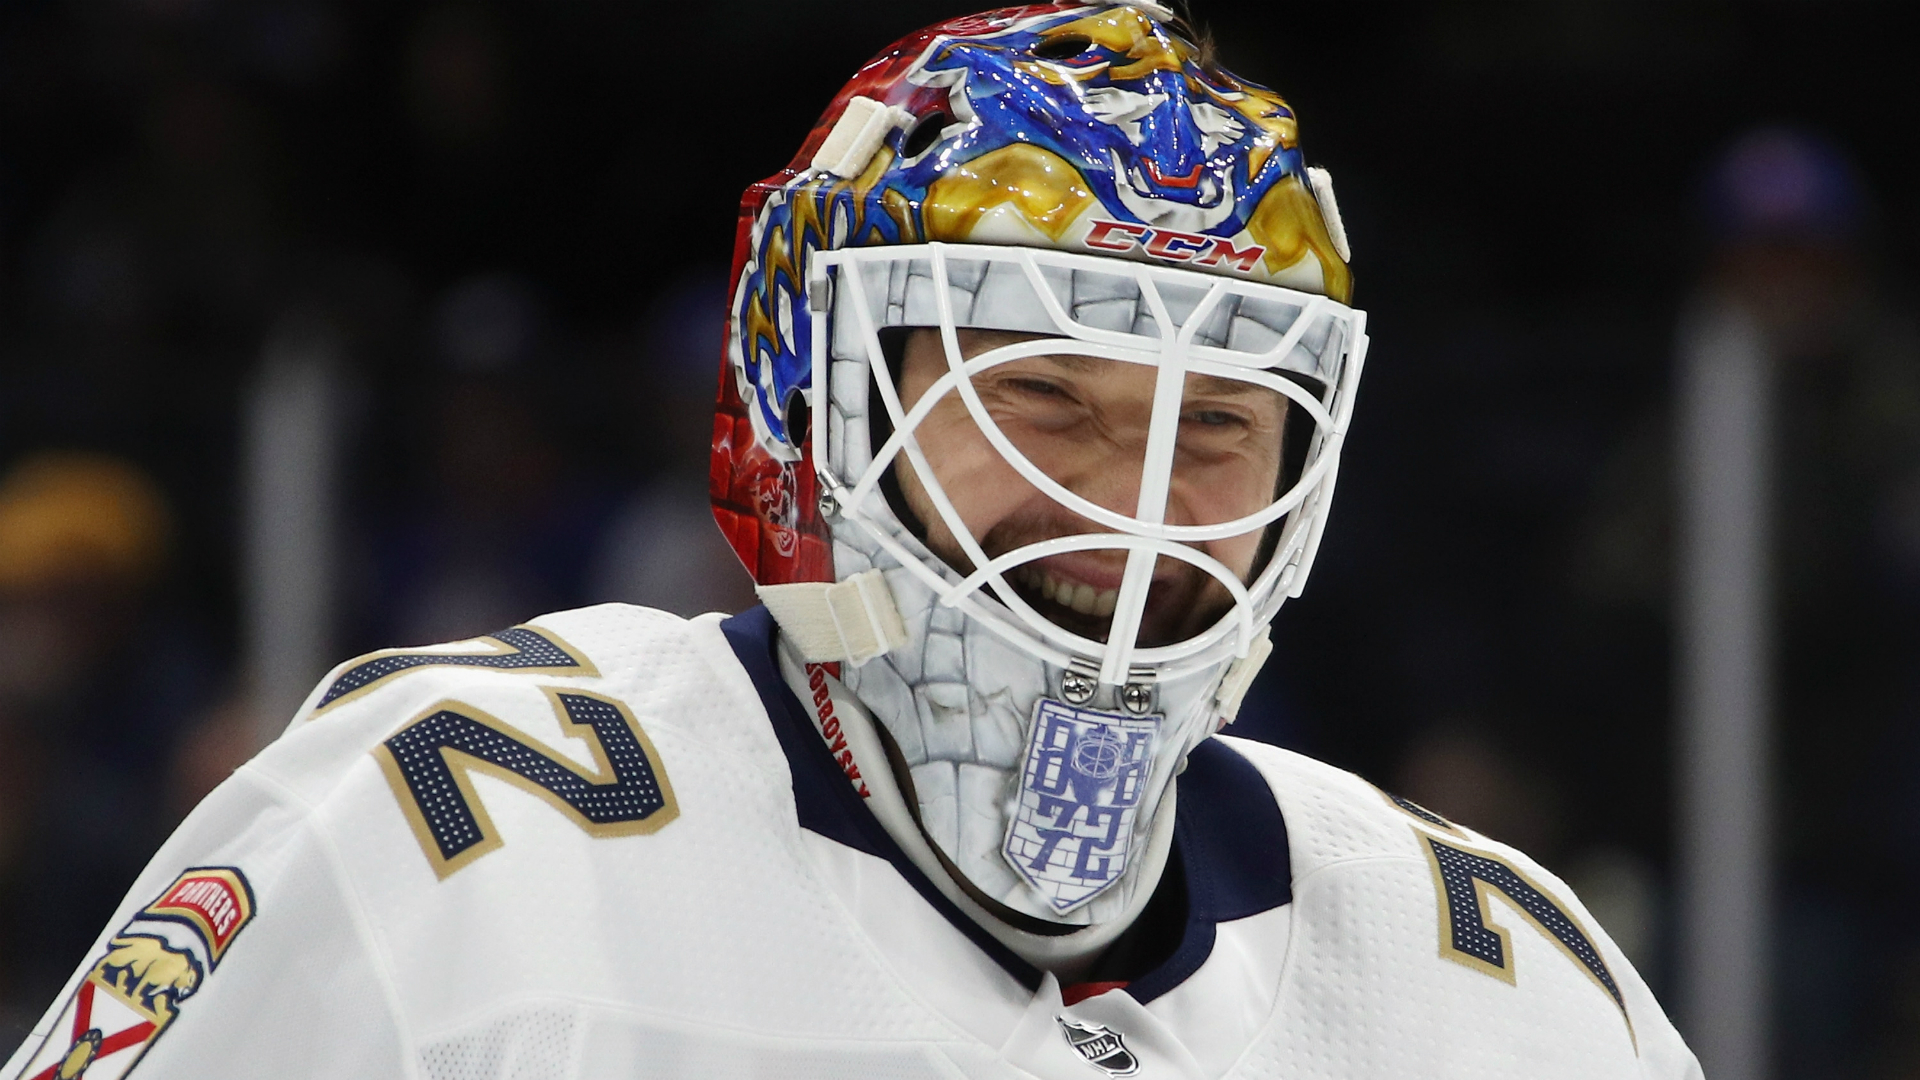 Florida Panthers' Sergei Bobrovsky records first shutout with new team vs. Red Wings